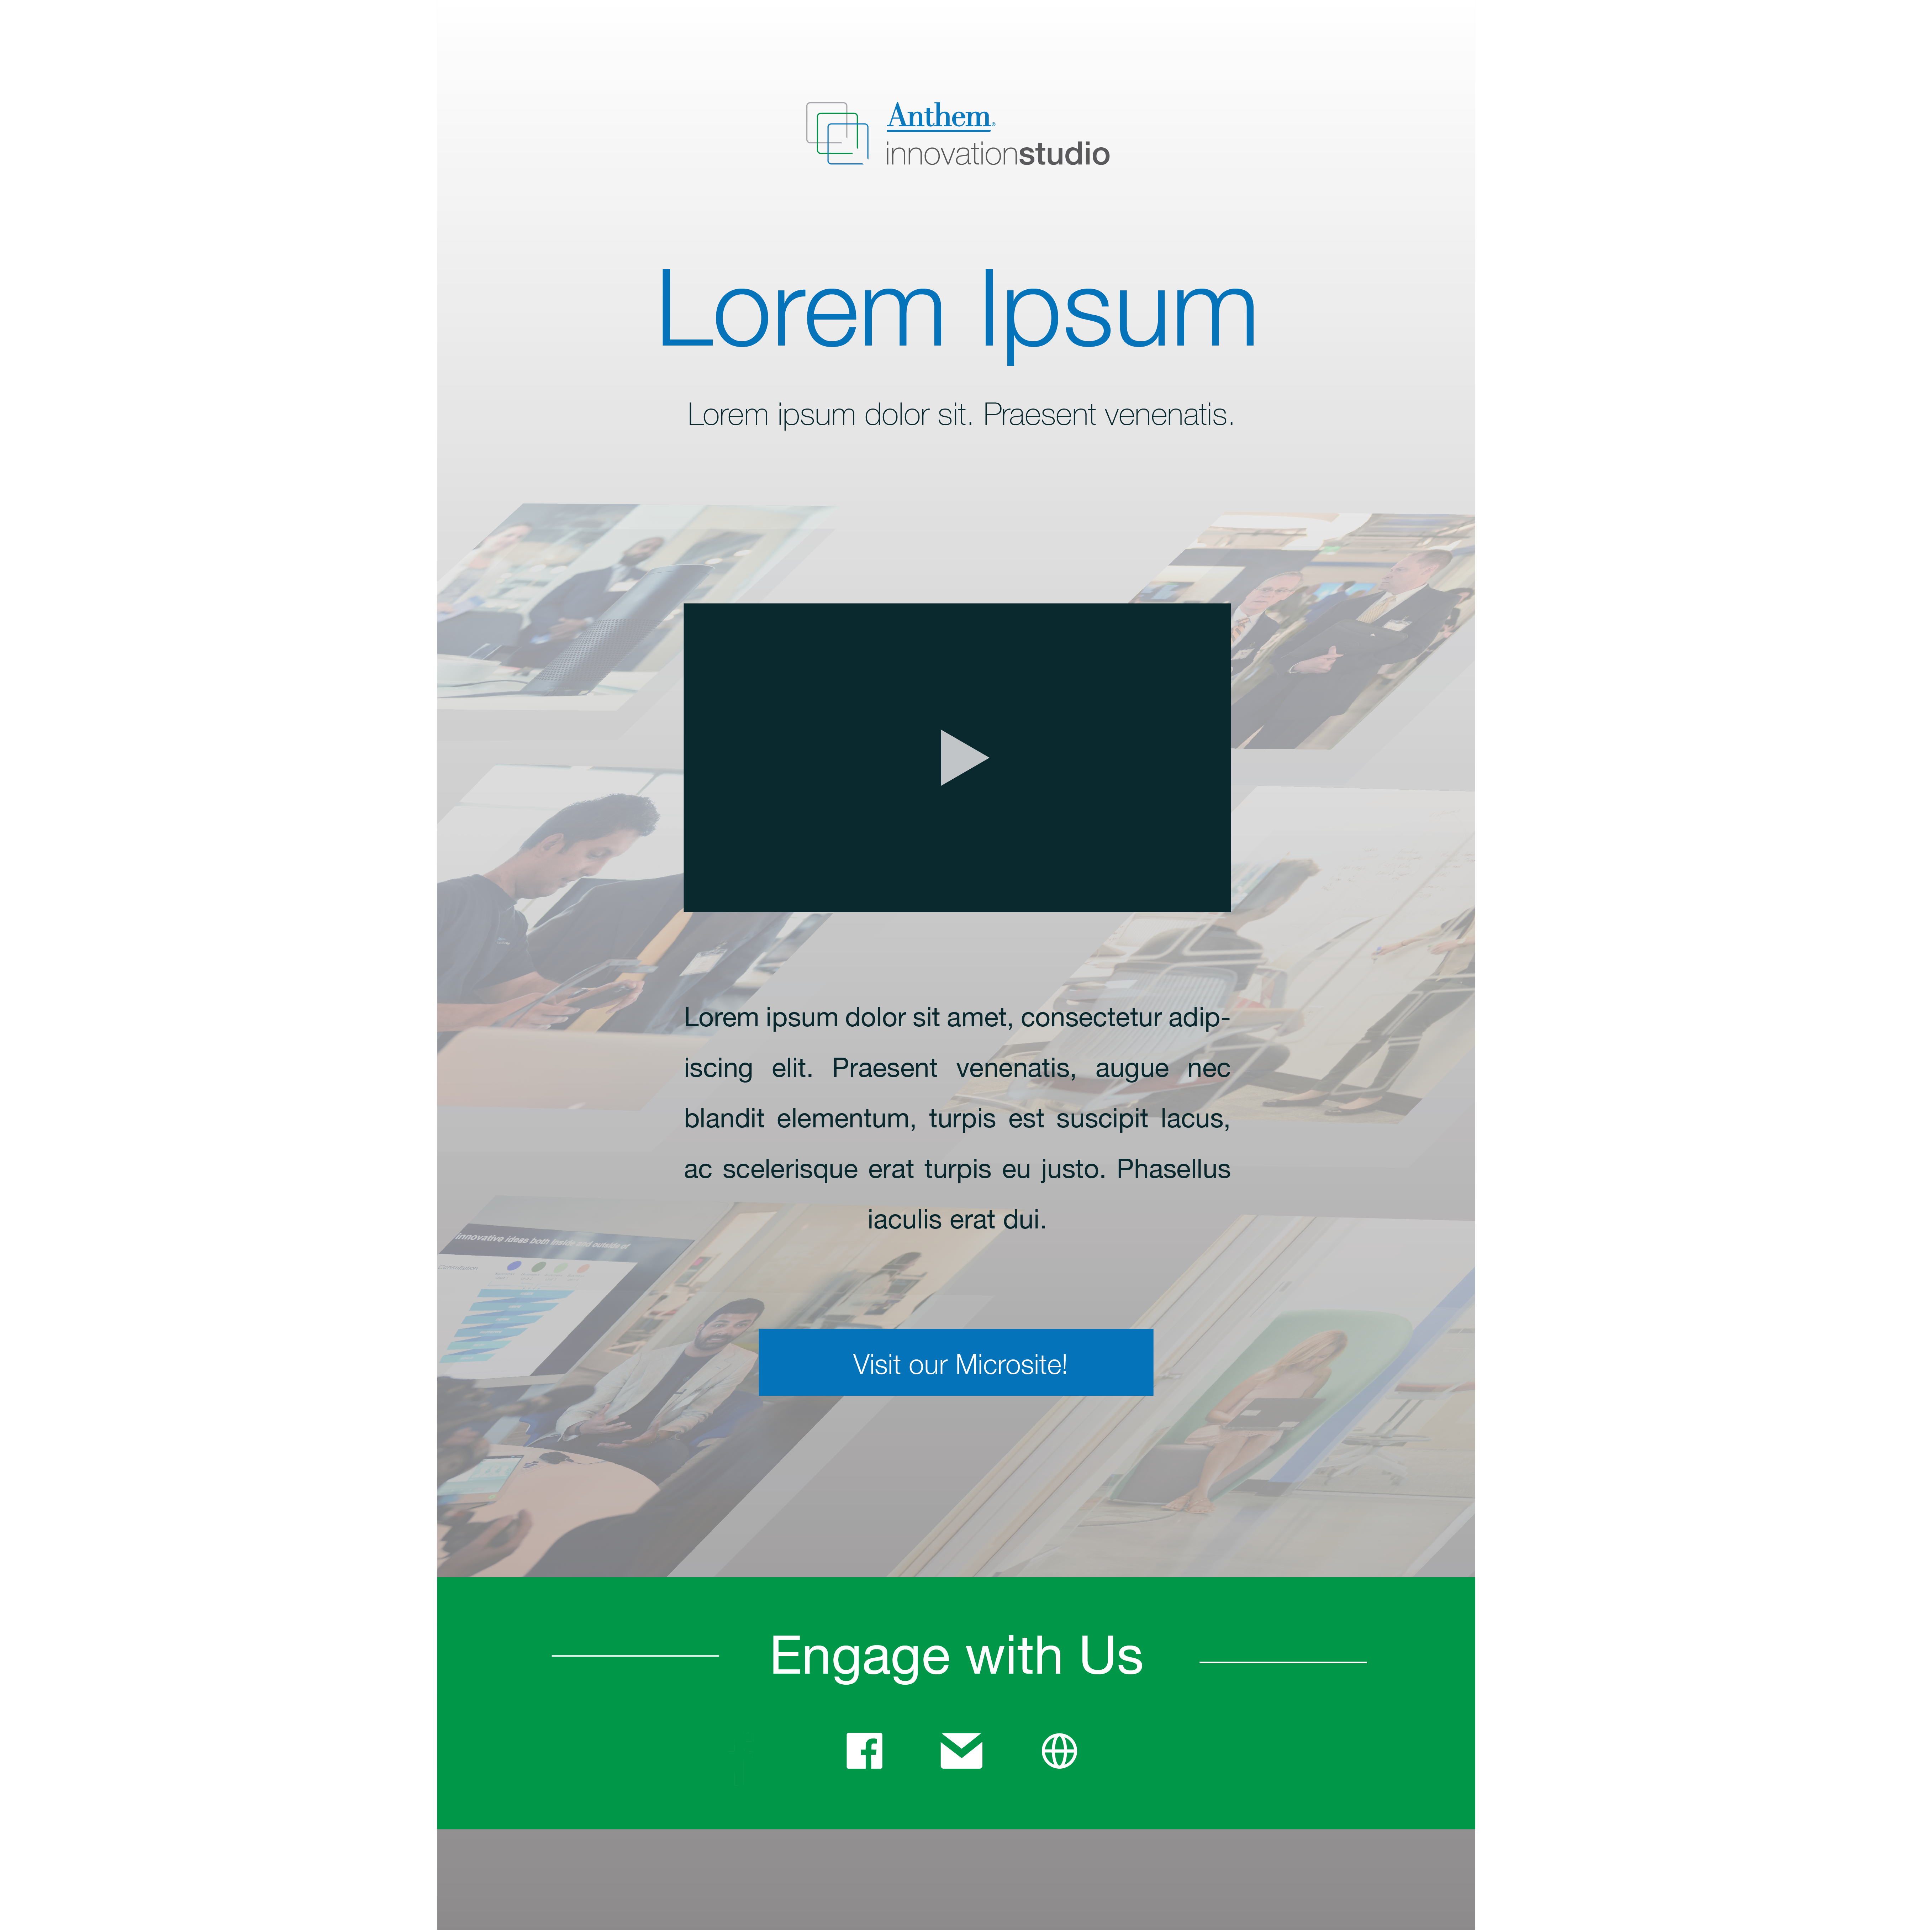 Email Design Iteration 1